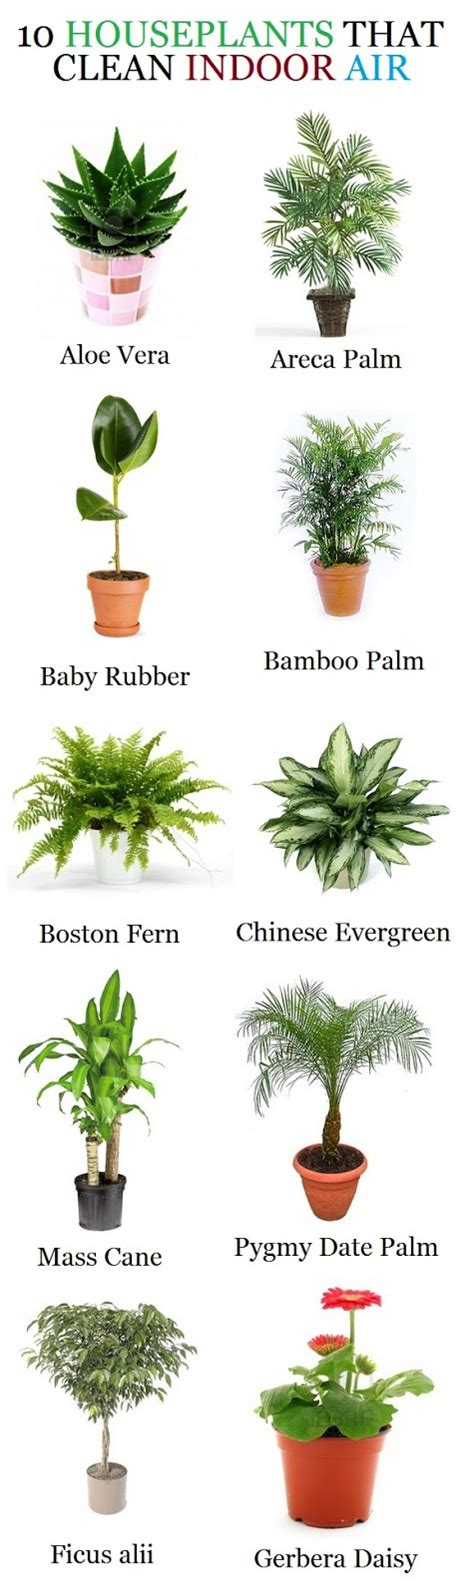 indoor plants to clean air 10 houseplants that clean indoor air beautiful home and